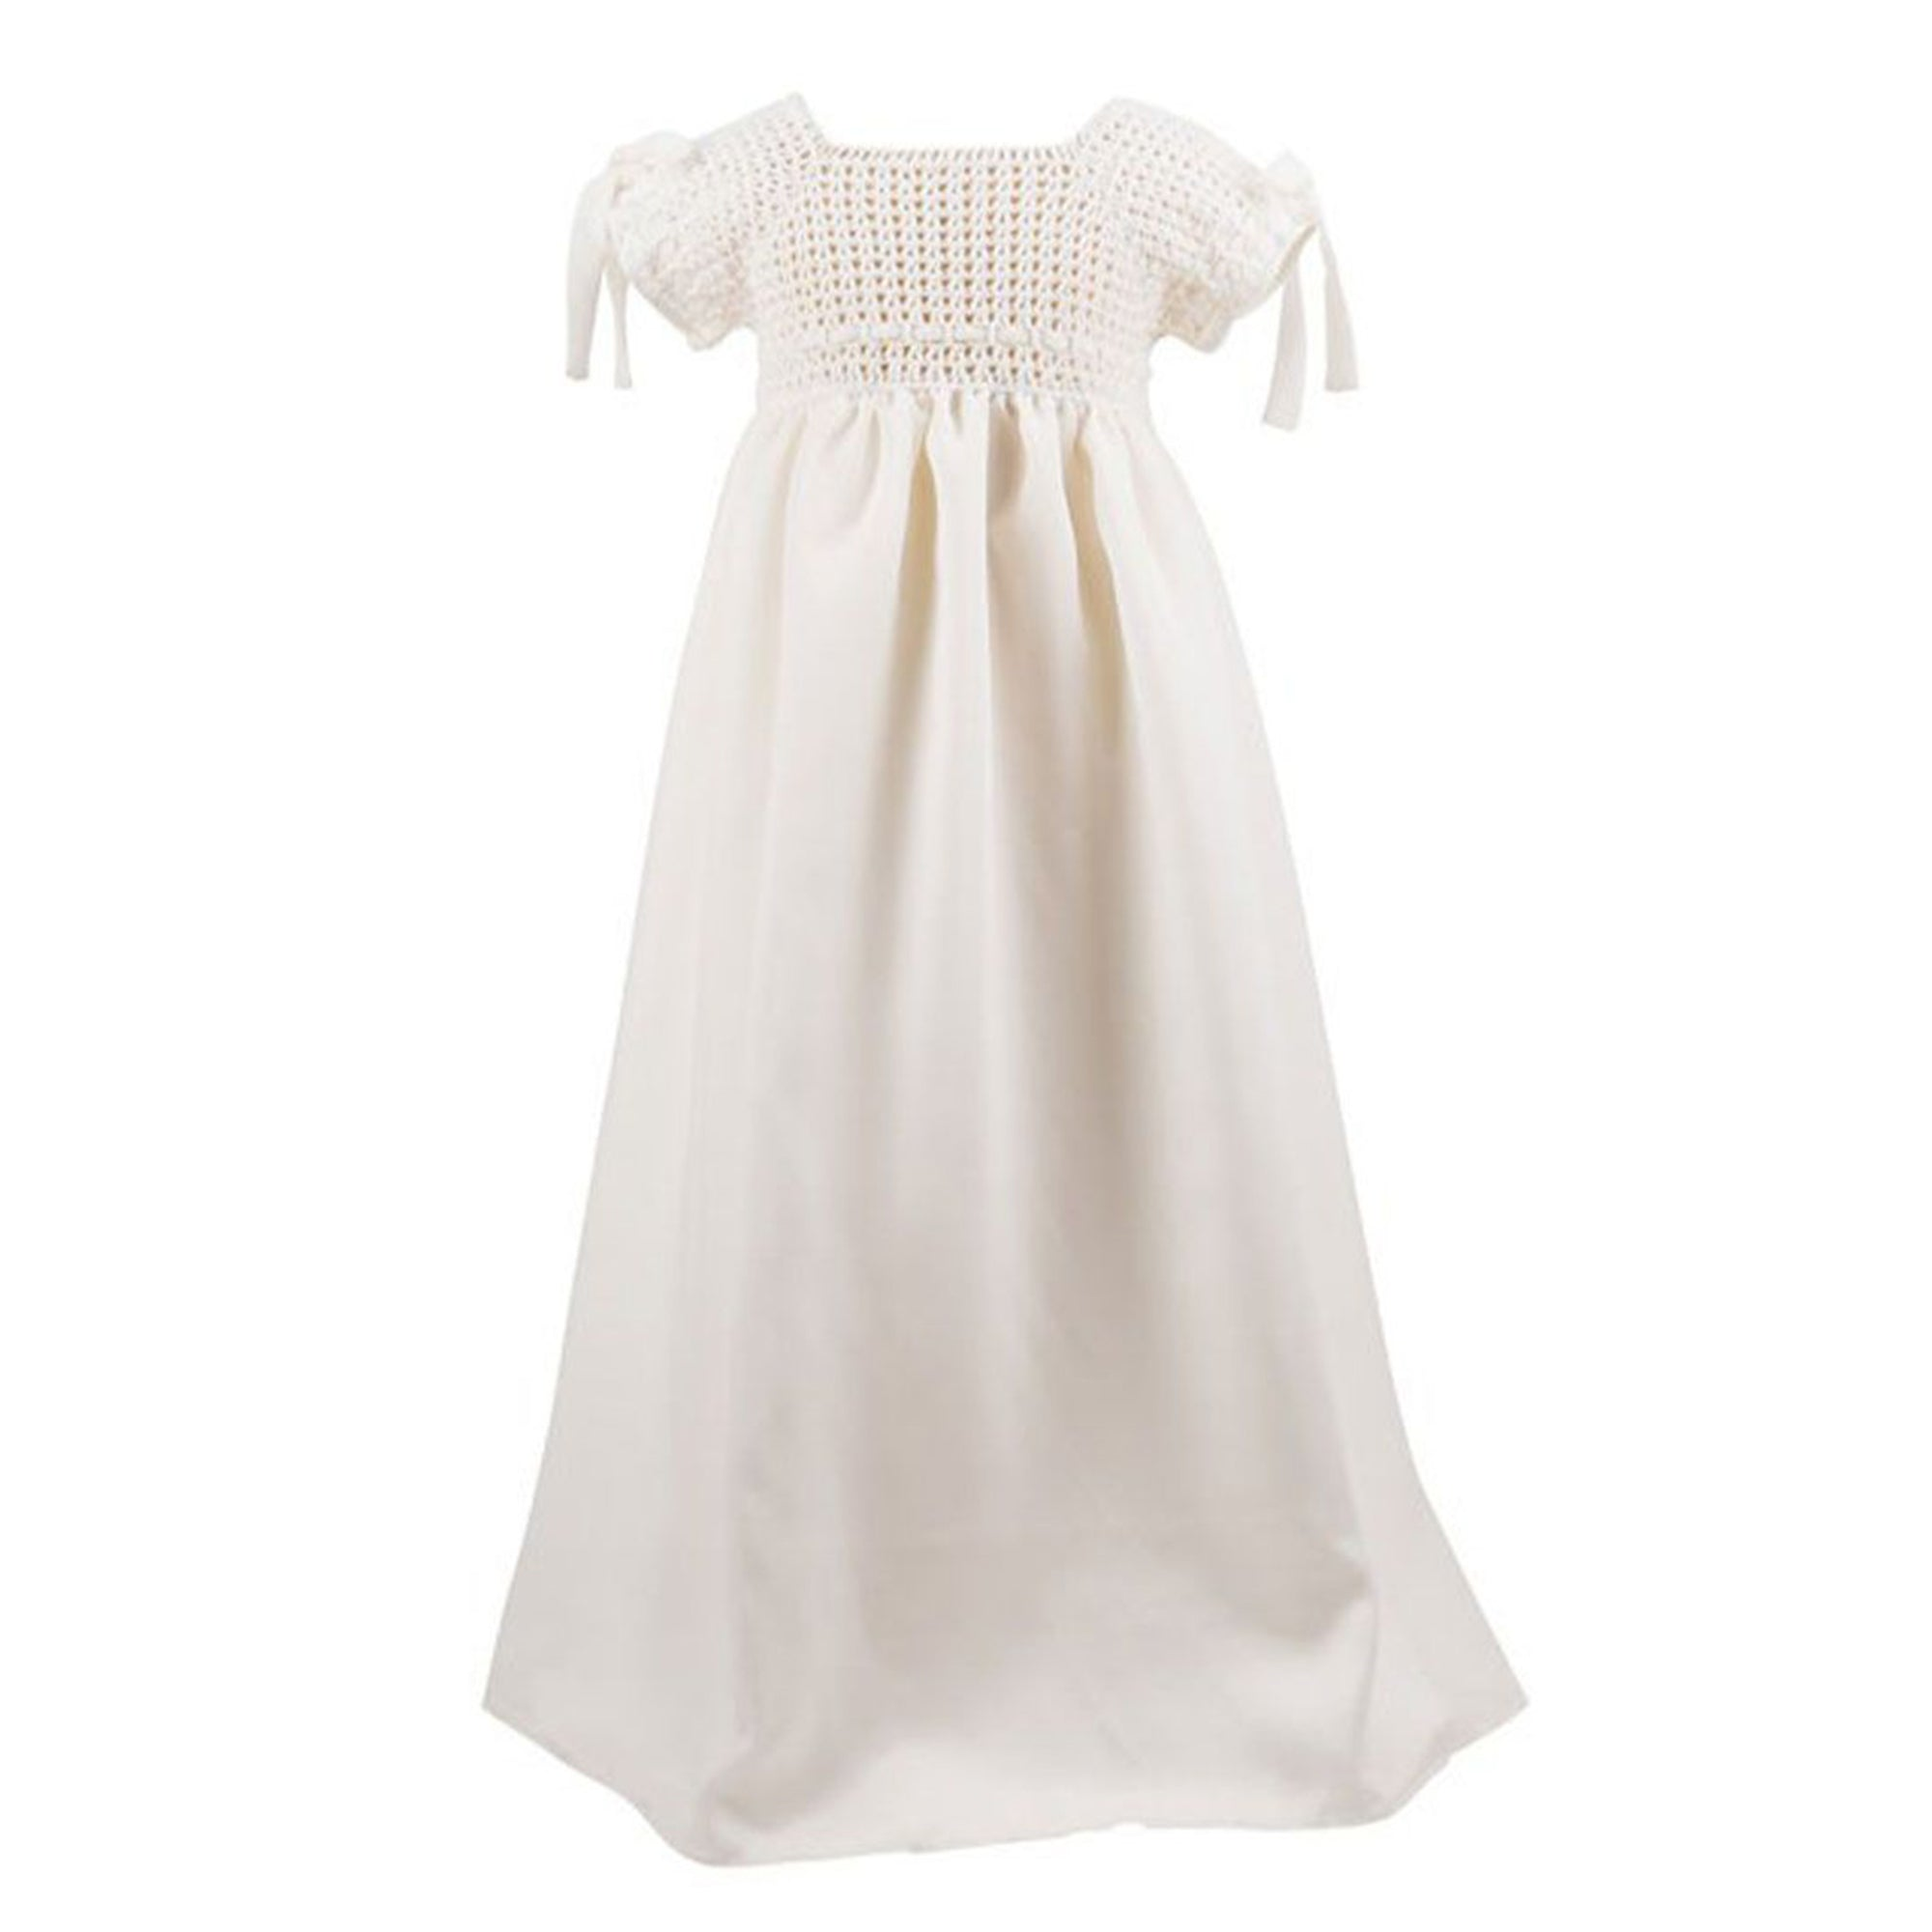 Numero 74 Salome Dress White - Scandi Minimal